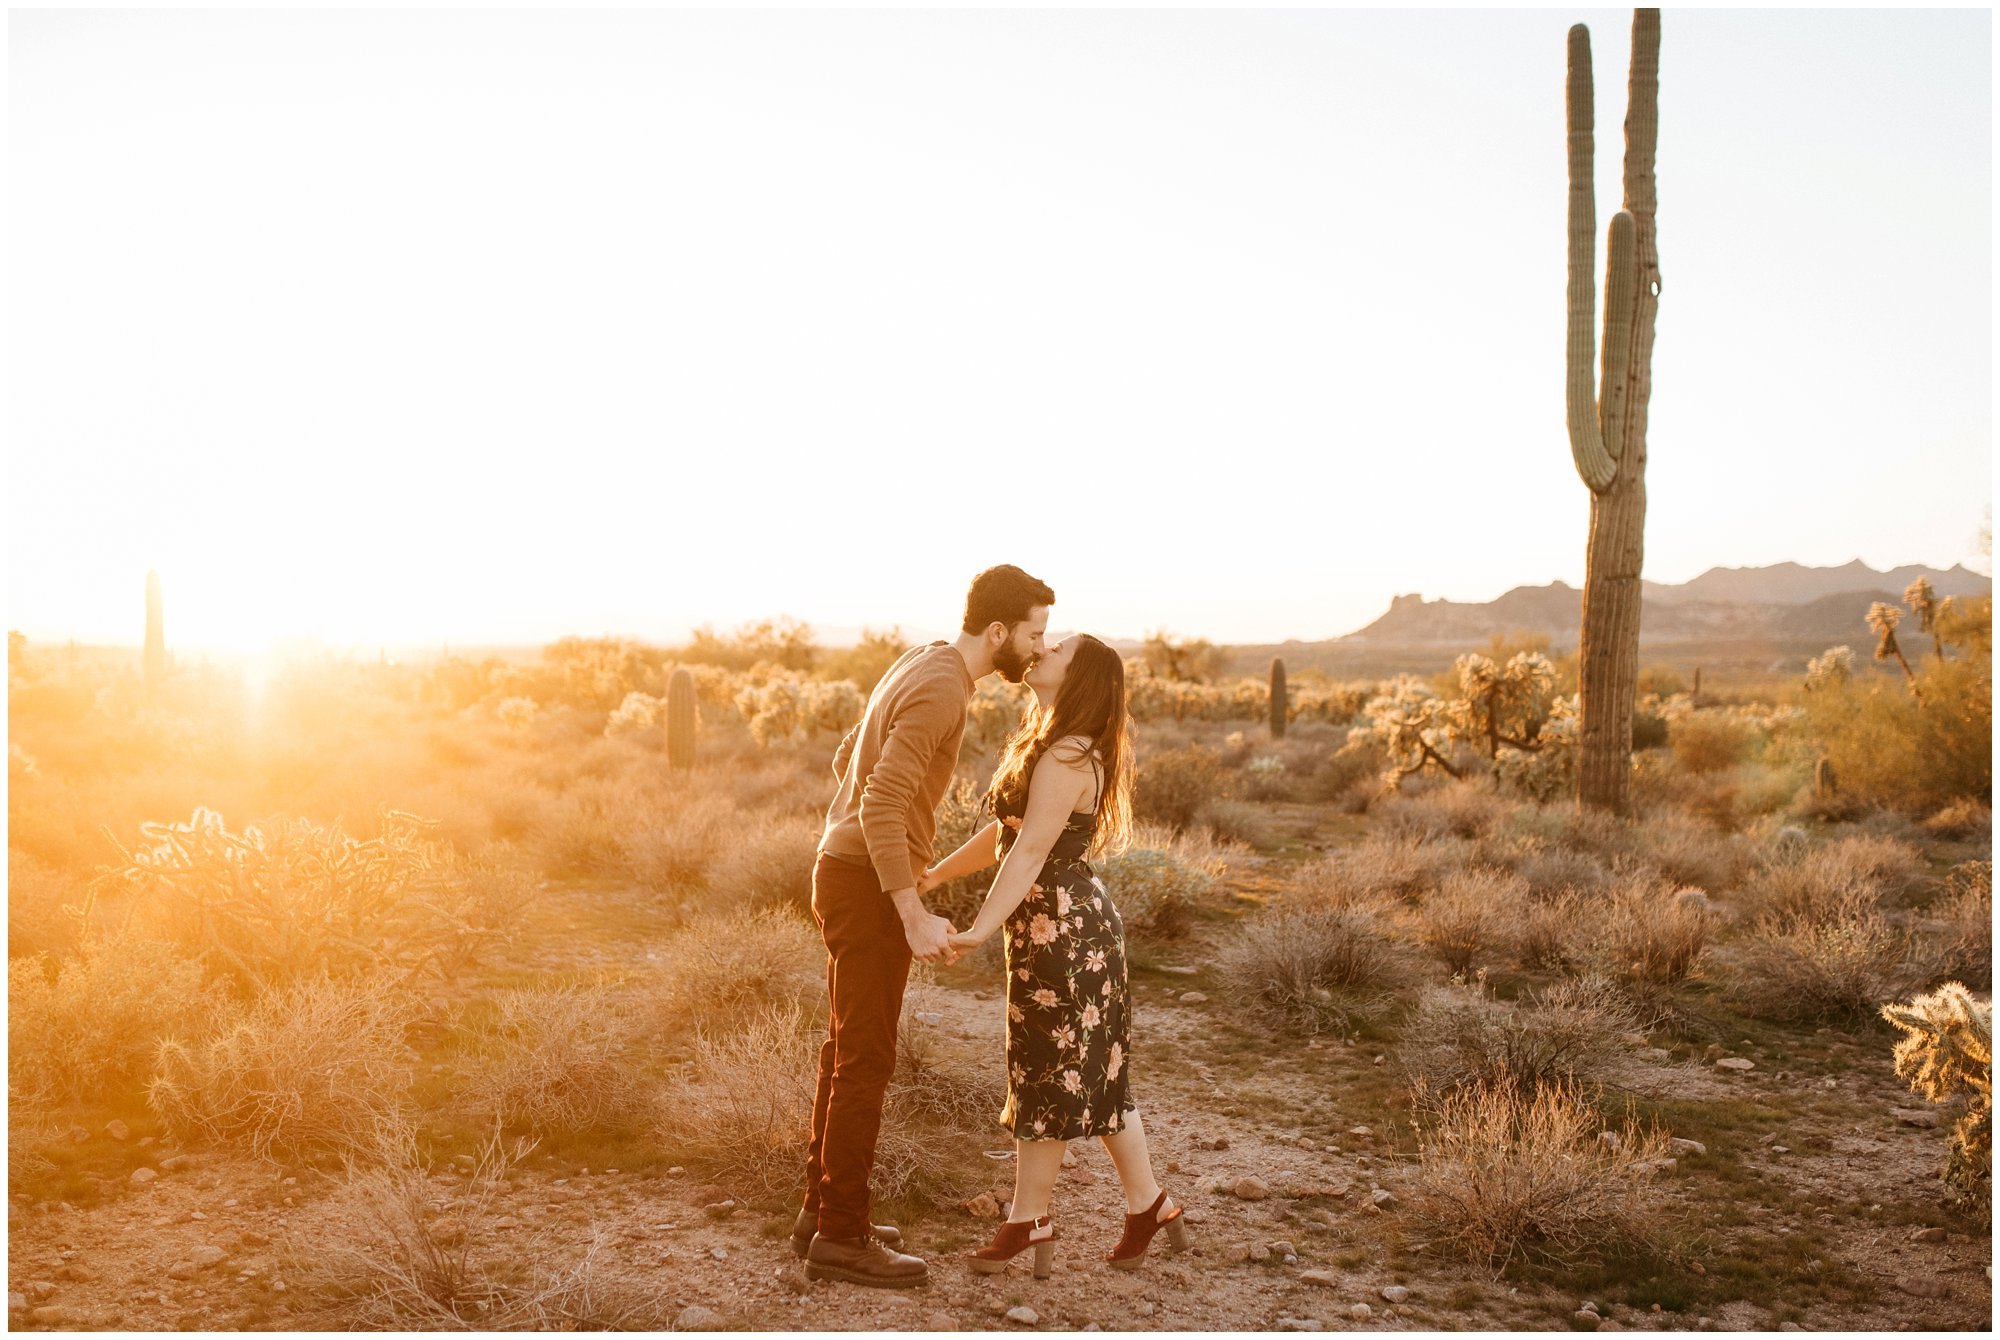 Arizona Desert Engagement Session - Megan + Geno - Ashtyn Nicole Photo_0024.jpg